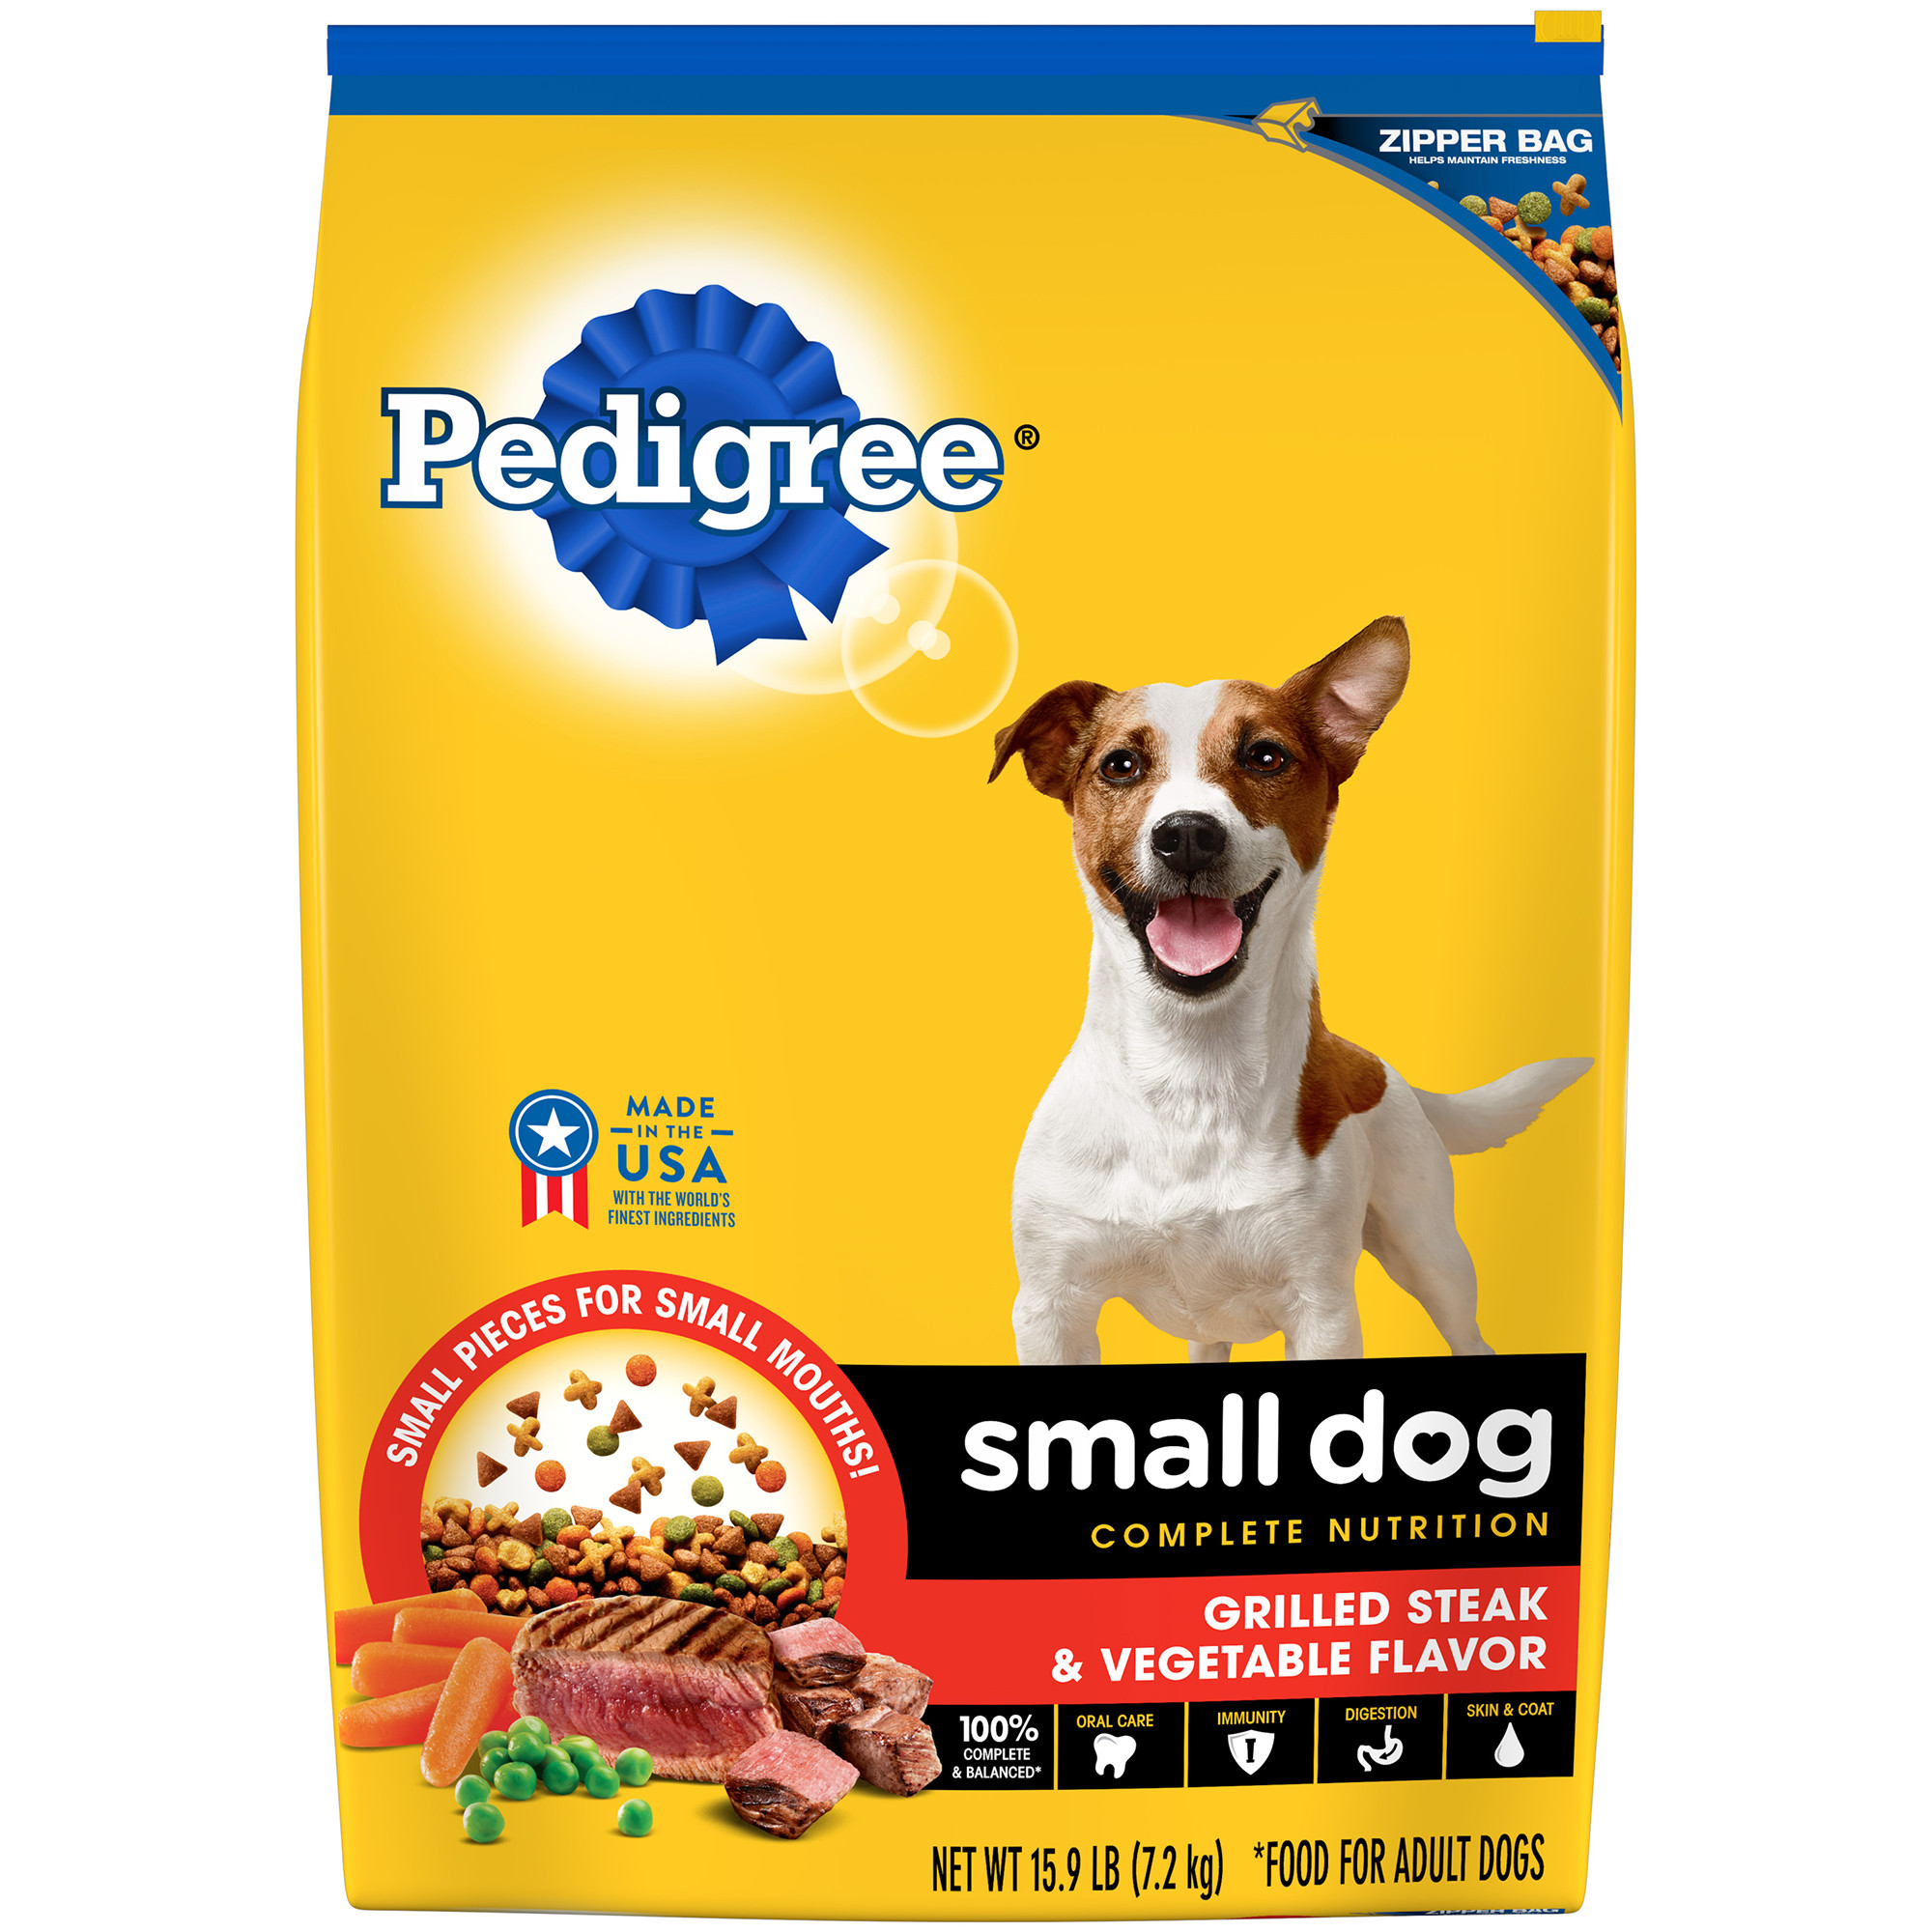 PEDIGREE Small Dog Adult Complete Nutrition Grilled Steak and Vegetable Flavor Dry Dog Food 15.9 Pounds